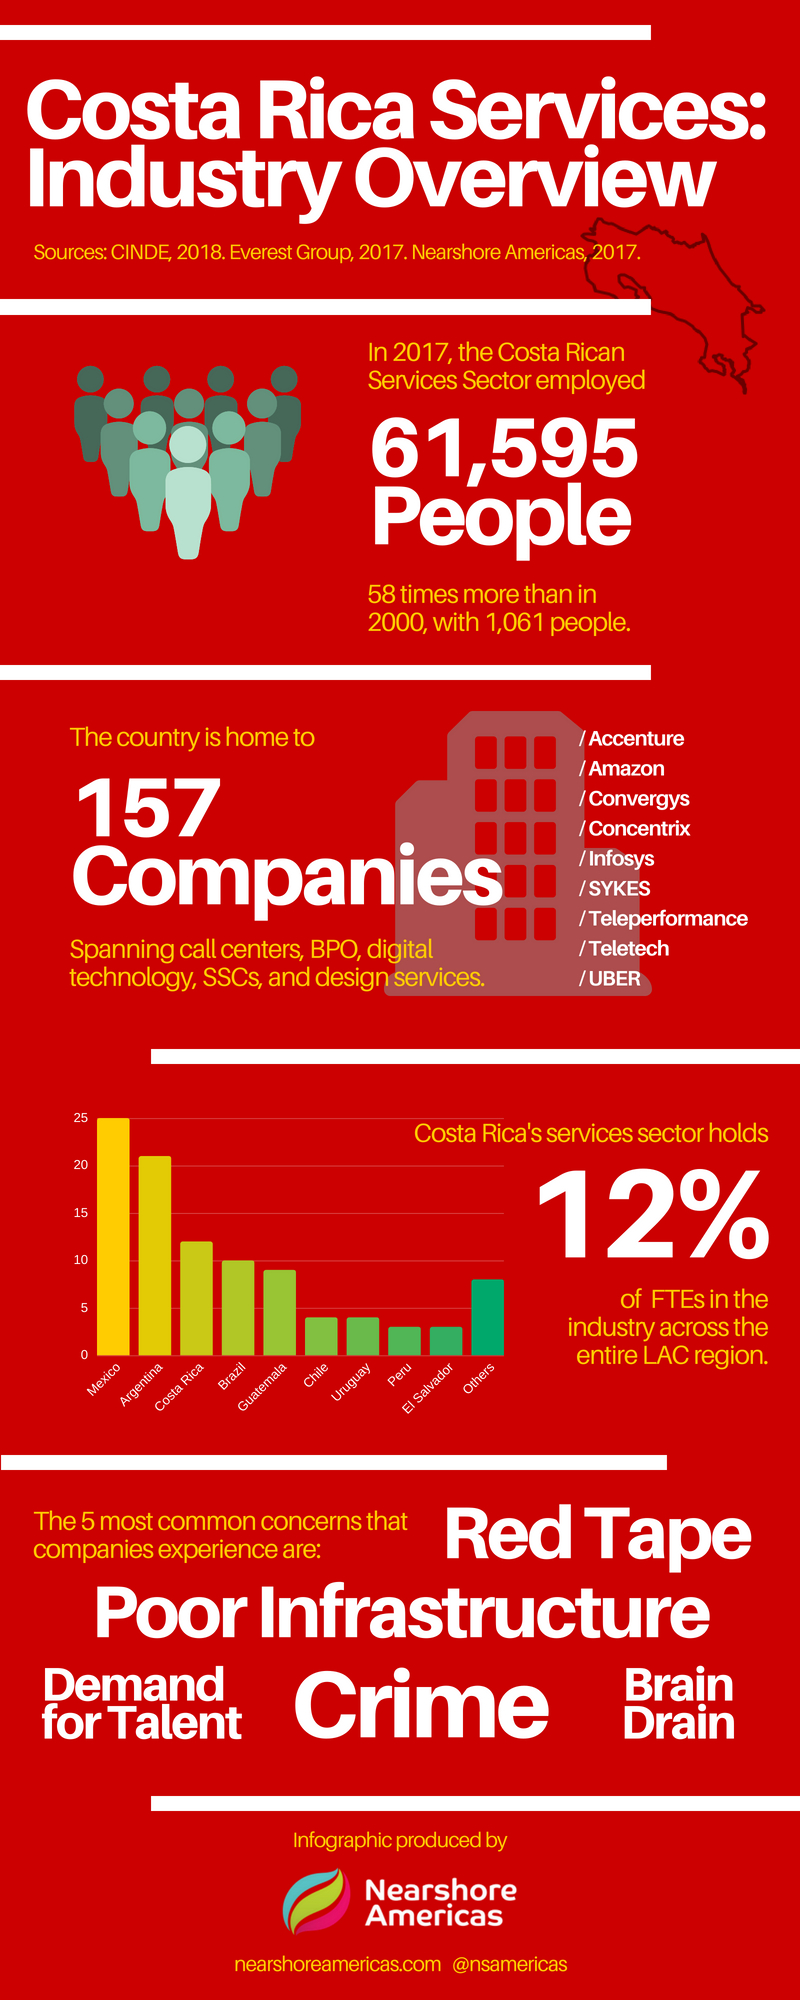 Costa Rica services industry overview